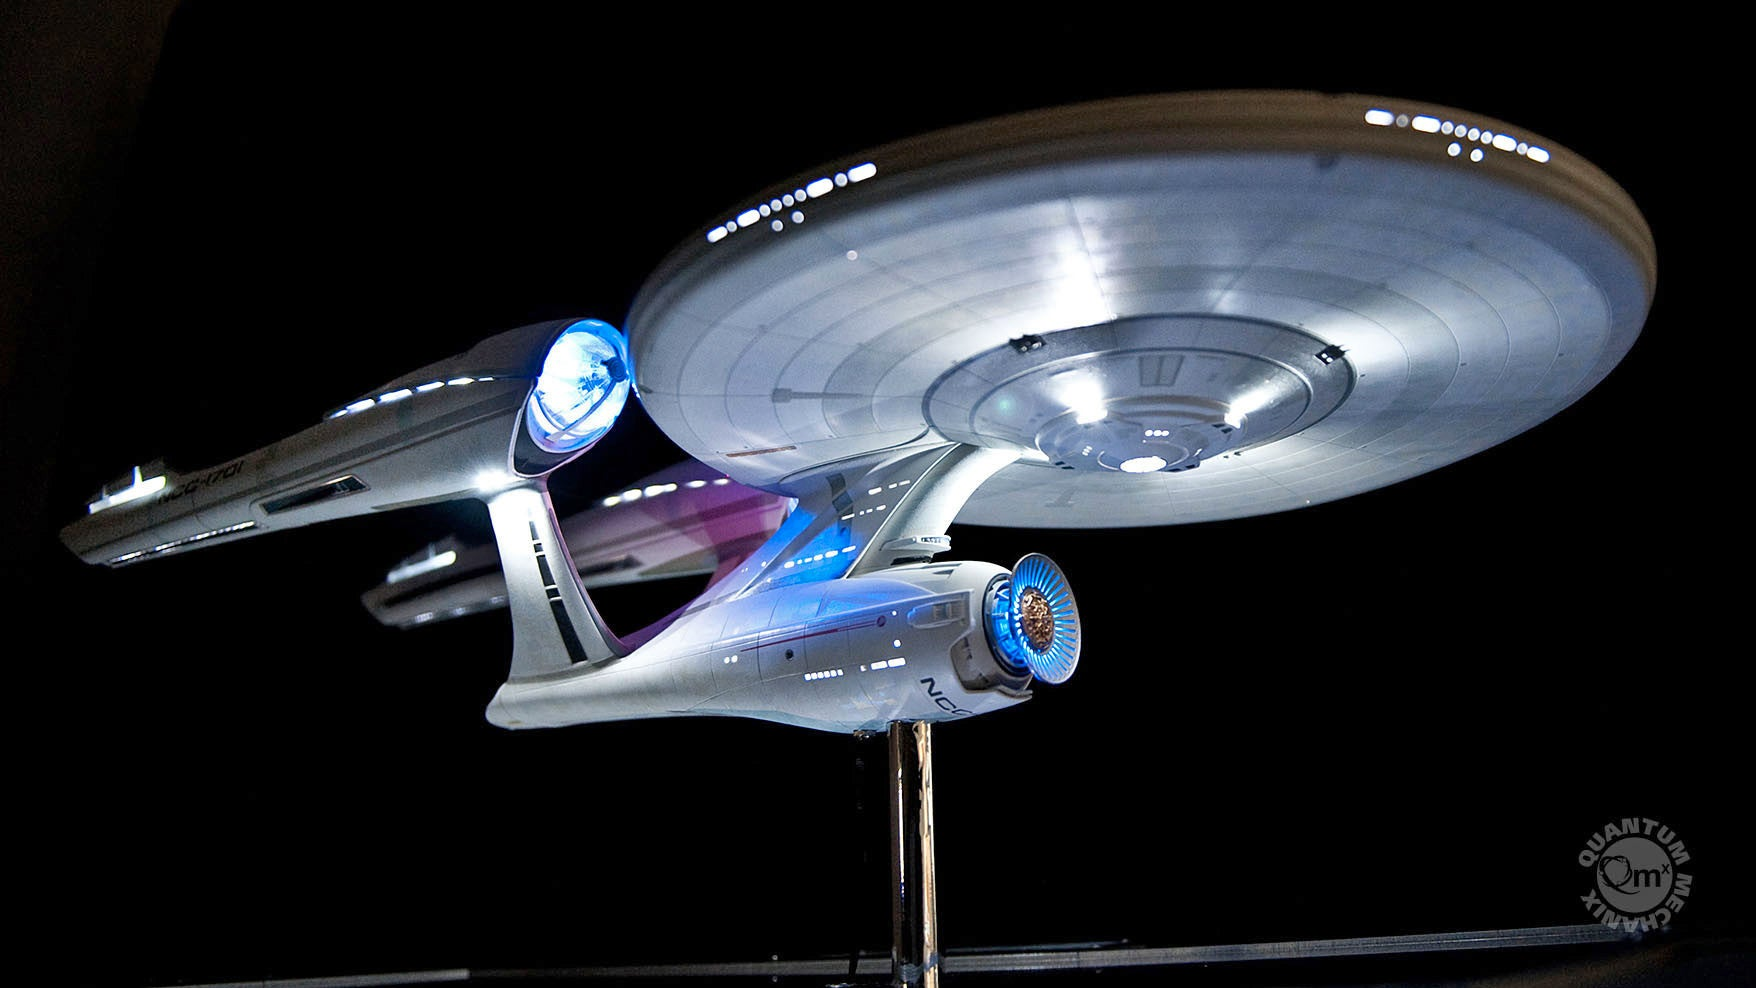 Try Not To Drool Over This Exquisite $9700 Replica Of The USS Enterprise